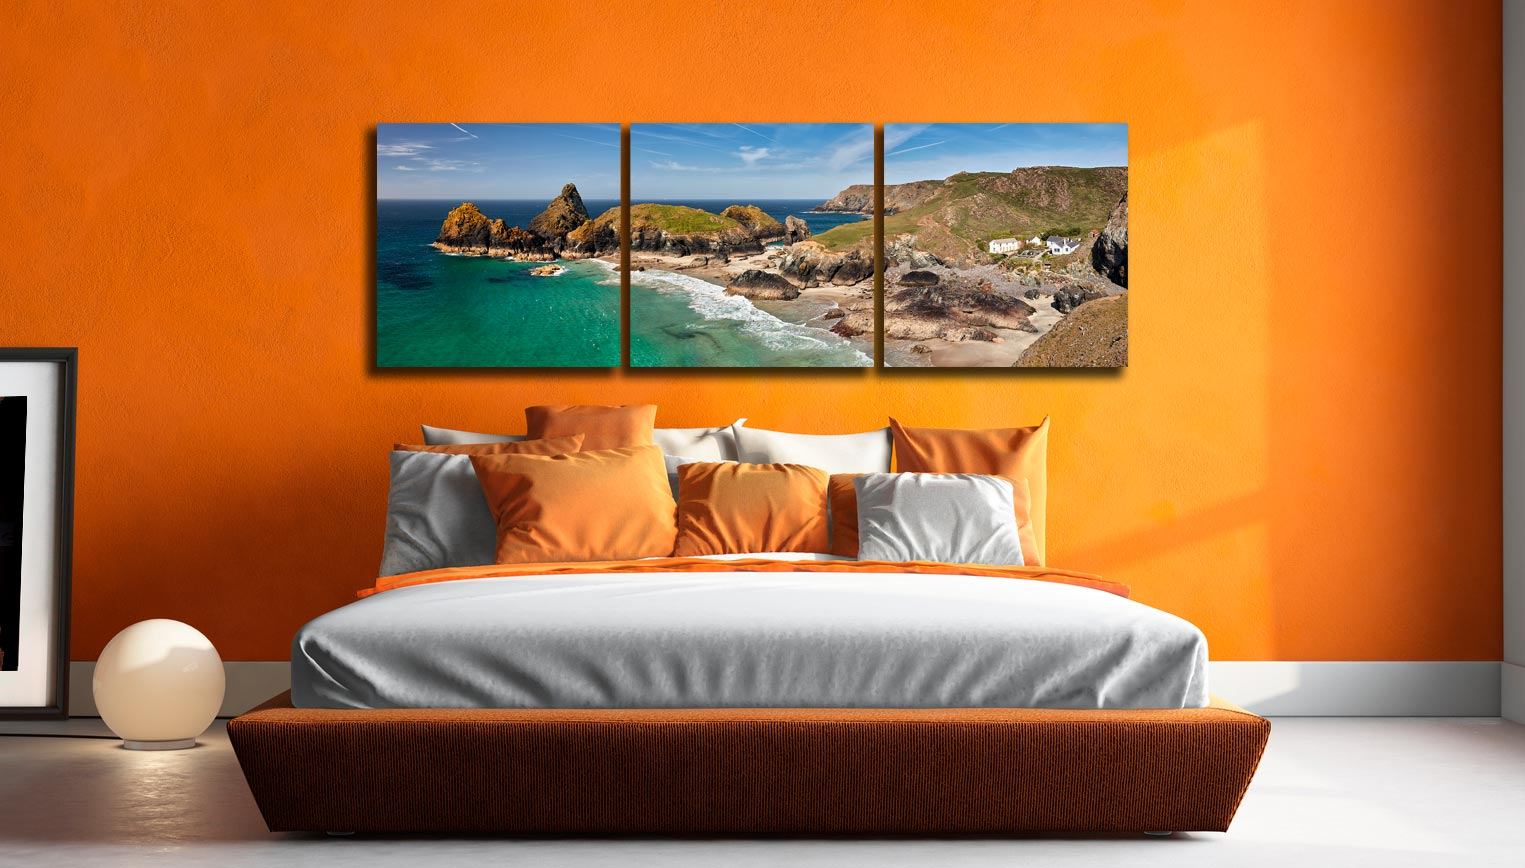 Kynance Cove and Cafe - 3 Panel Canvas on Wall